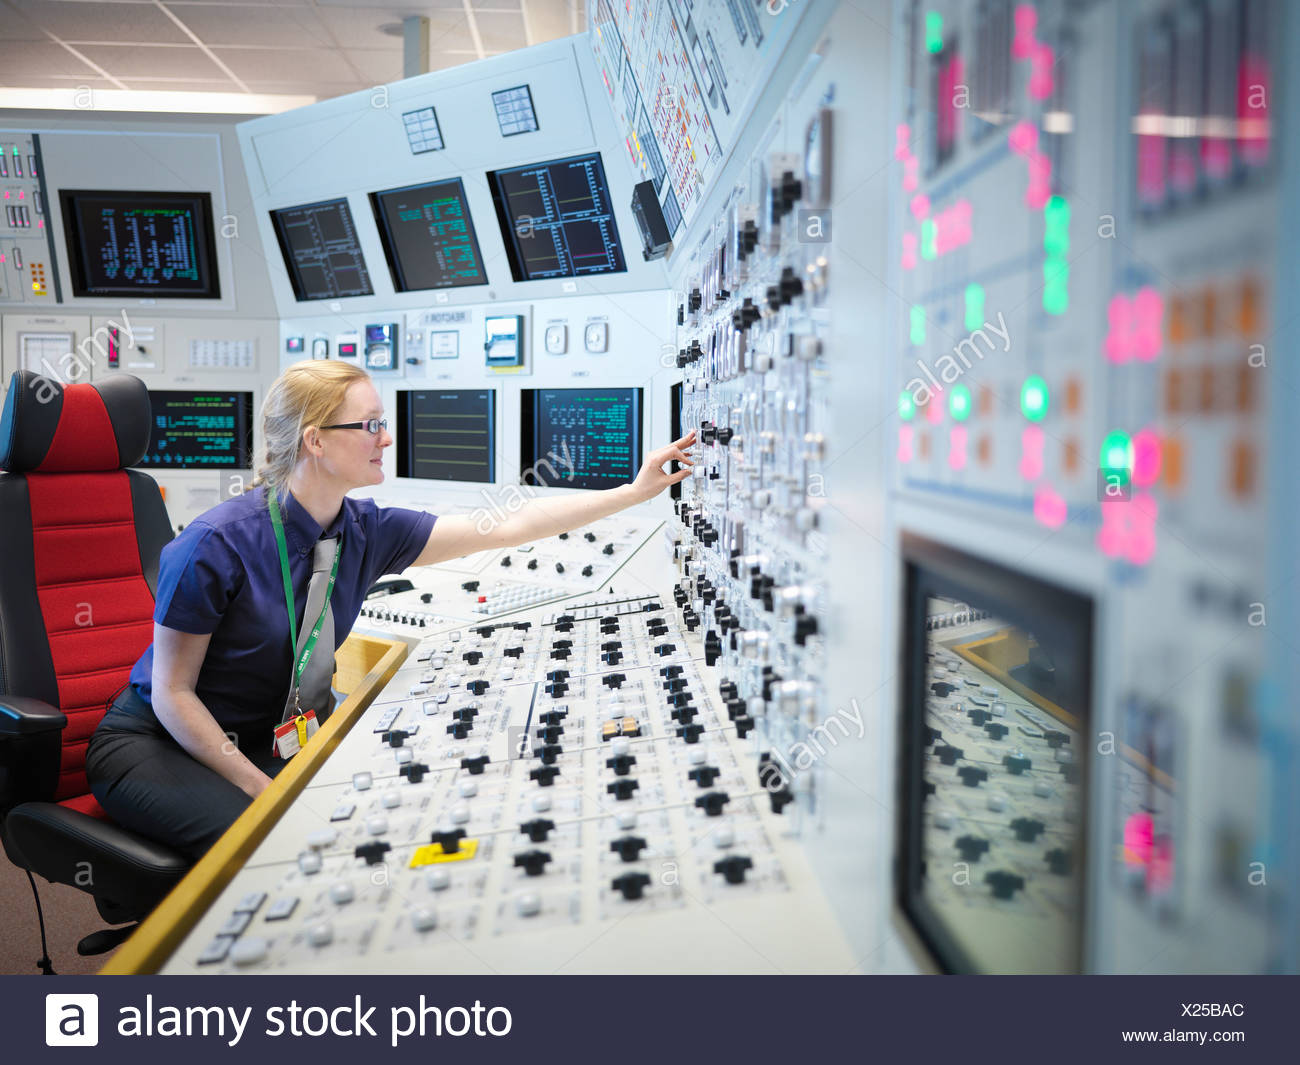 Female operator in nuclear power station control room simulator - Stock Image